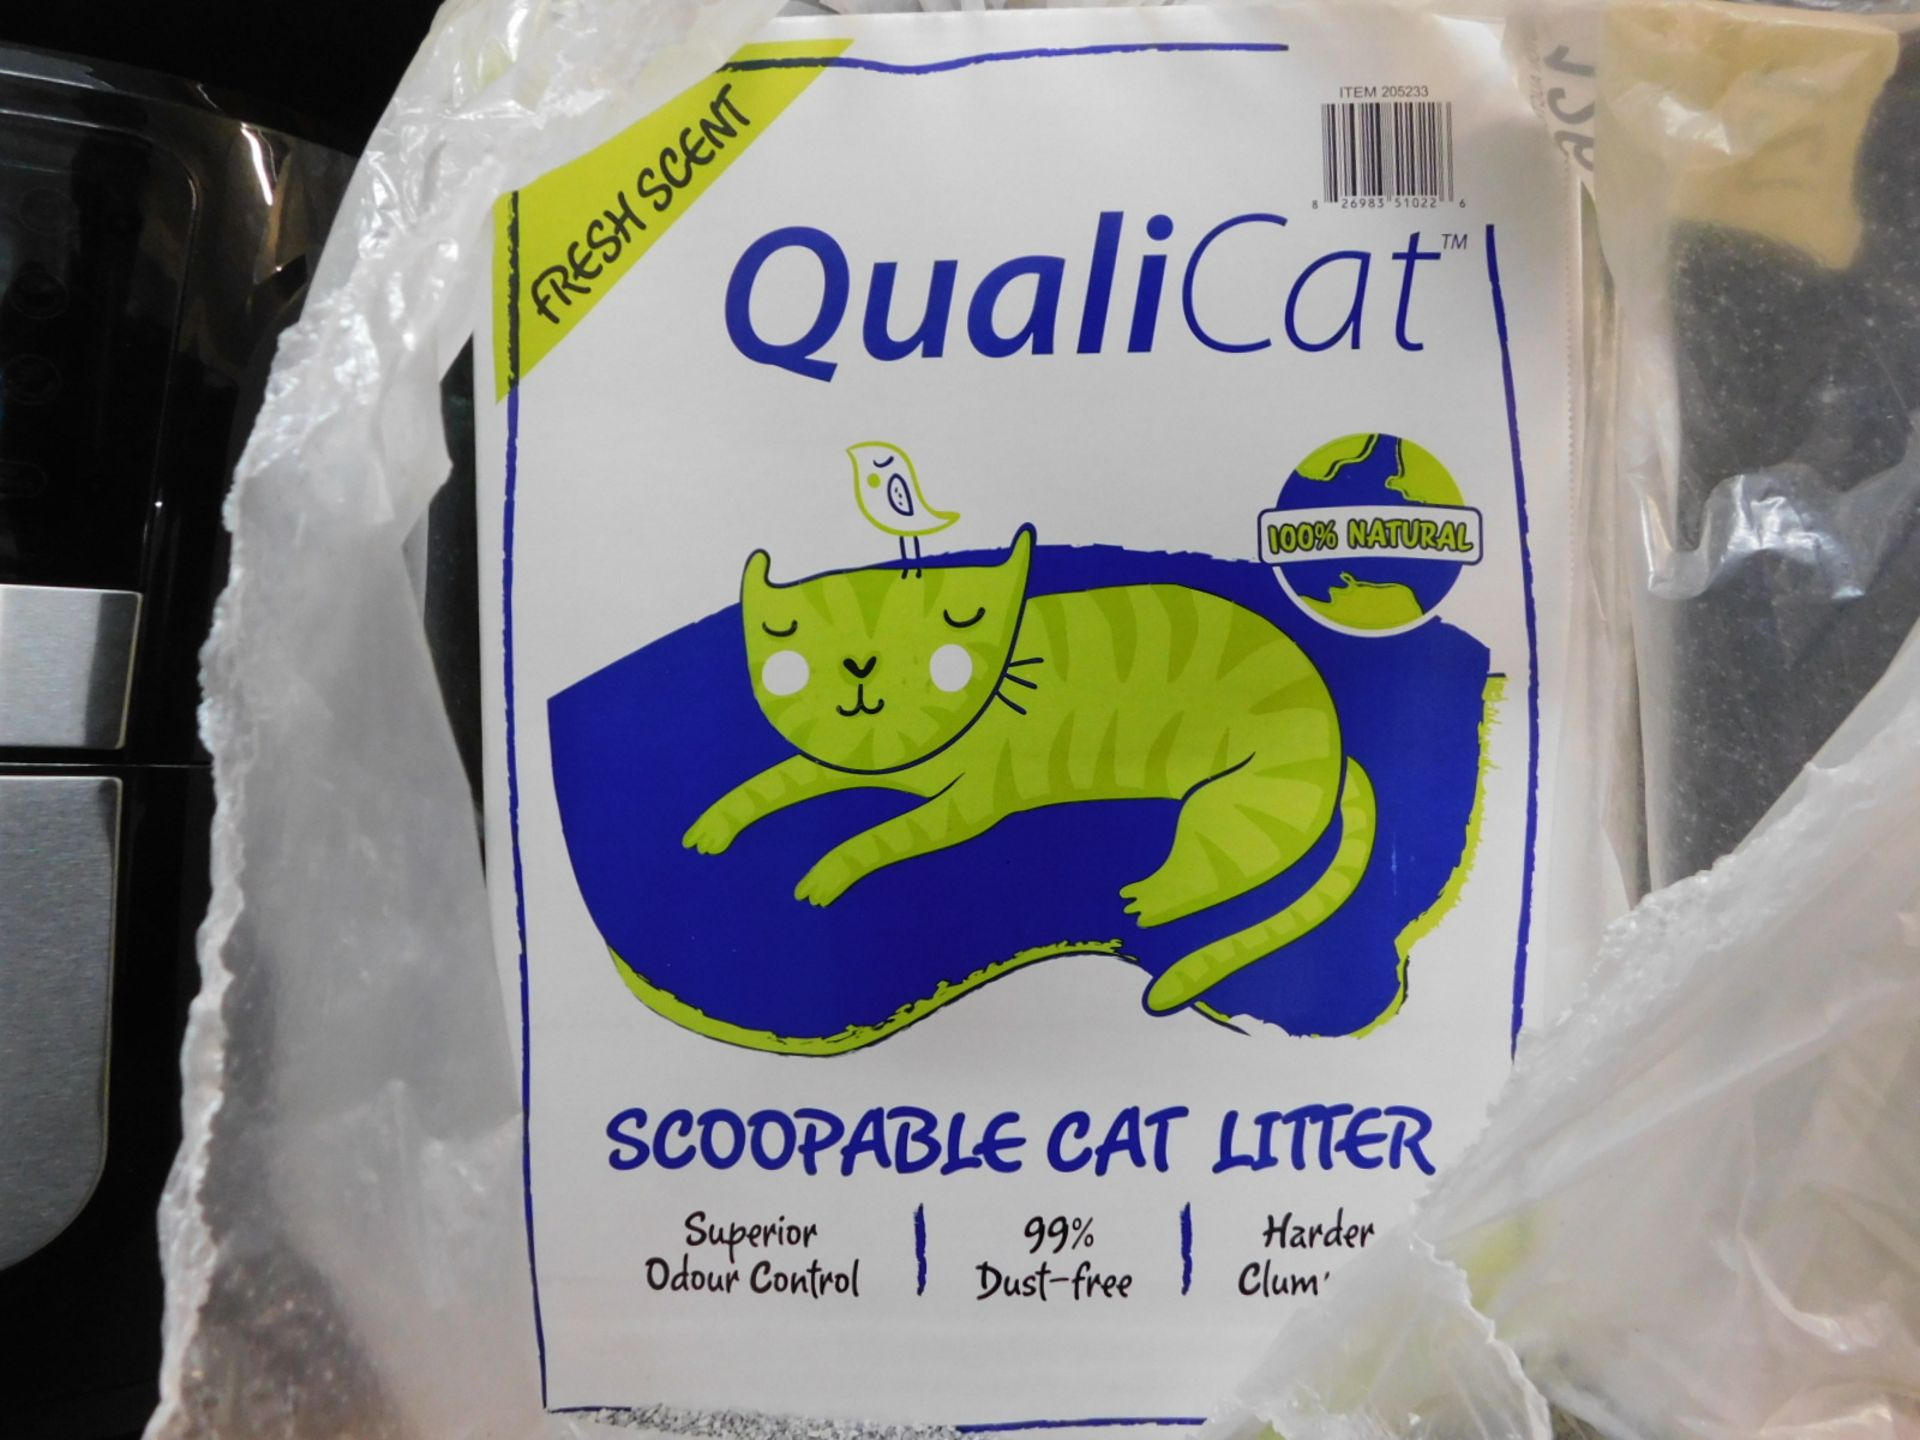 1 BOXED QUALICAT SCOOPABLE CAT LITTER 22.7KG(APPROX) RRP £29.99